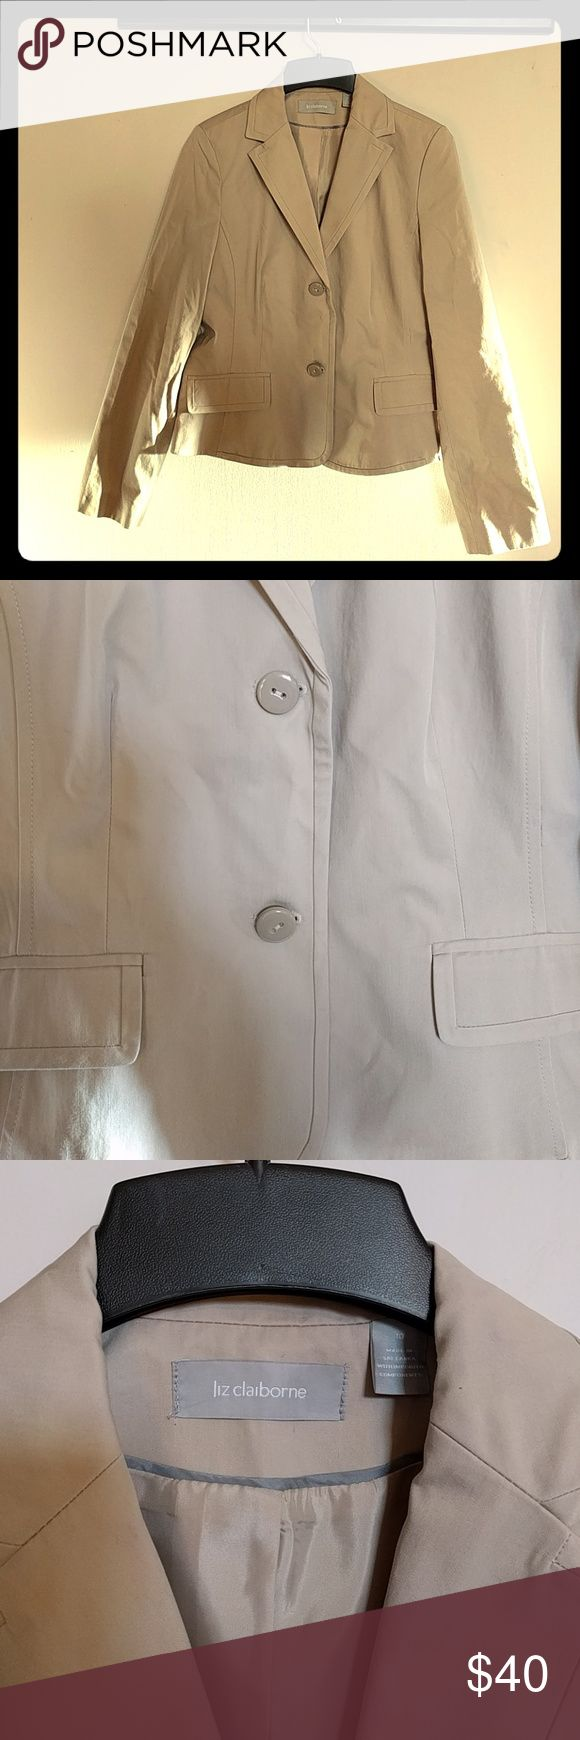 EUC Liz Claiborne Khaki Blazer / Suit Jacket Make that t-shirt look professional by throwing a blazer on top! Liz Claiborne khaki suit jacket, size 10. Fully lined. Worn only once, no damage, no visible signs of wear. Liz Claiborne Jackets & Coats Blazers